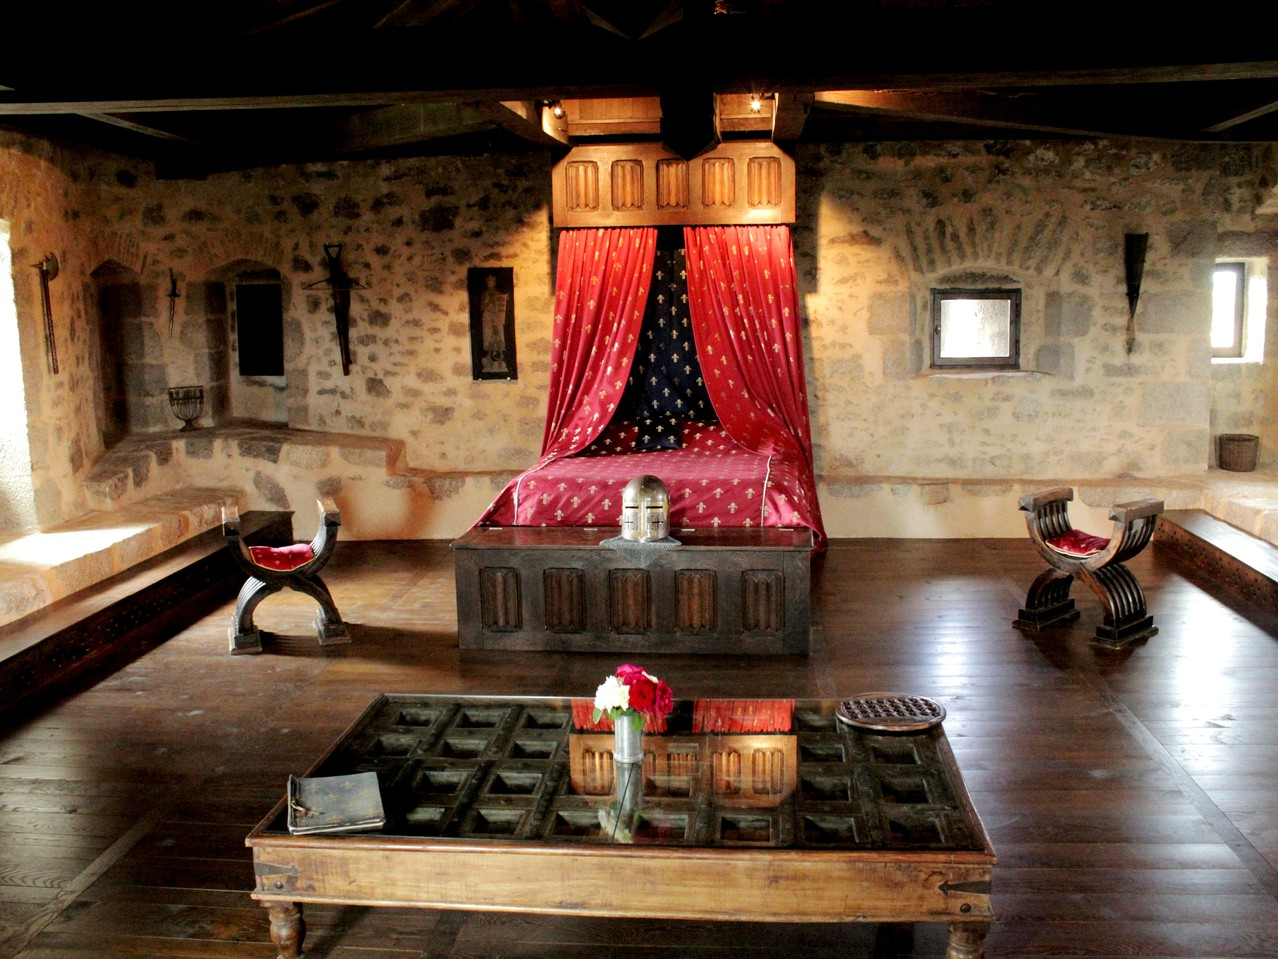 King's Chamber medieval stay